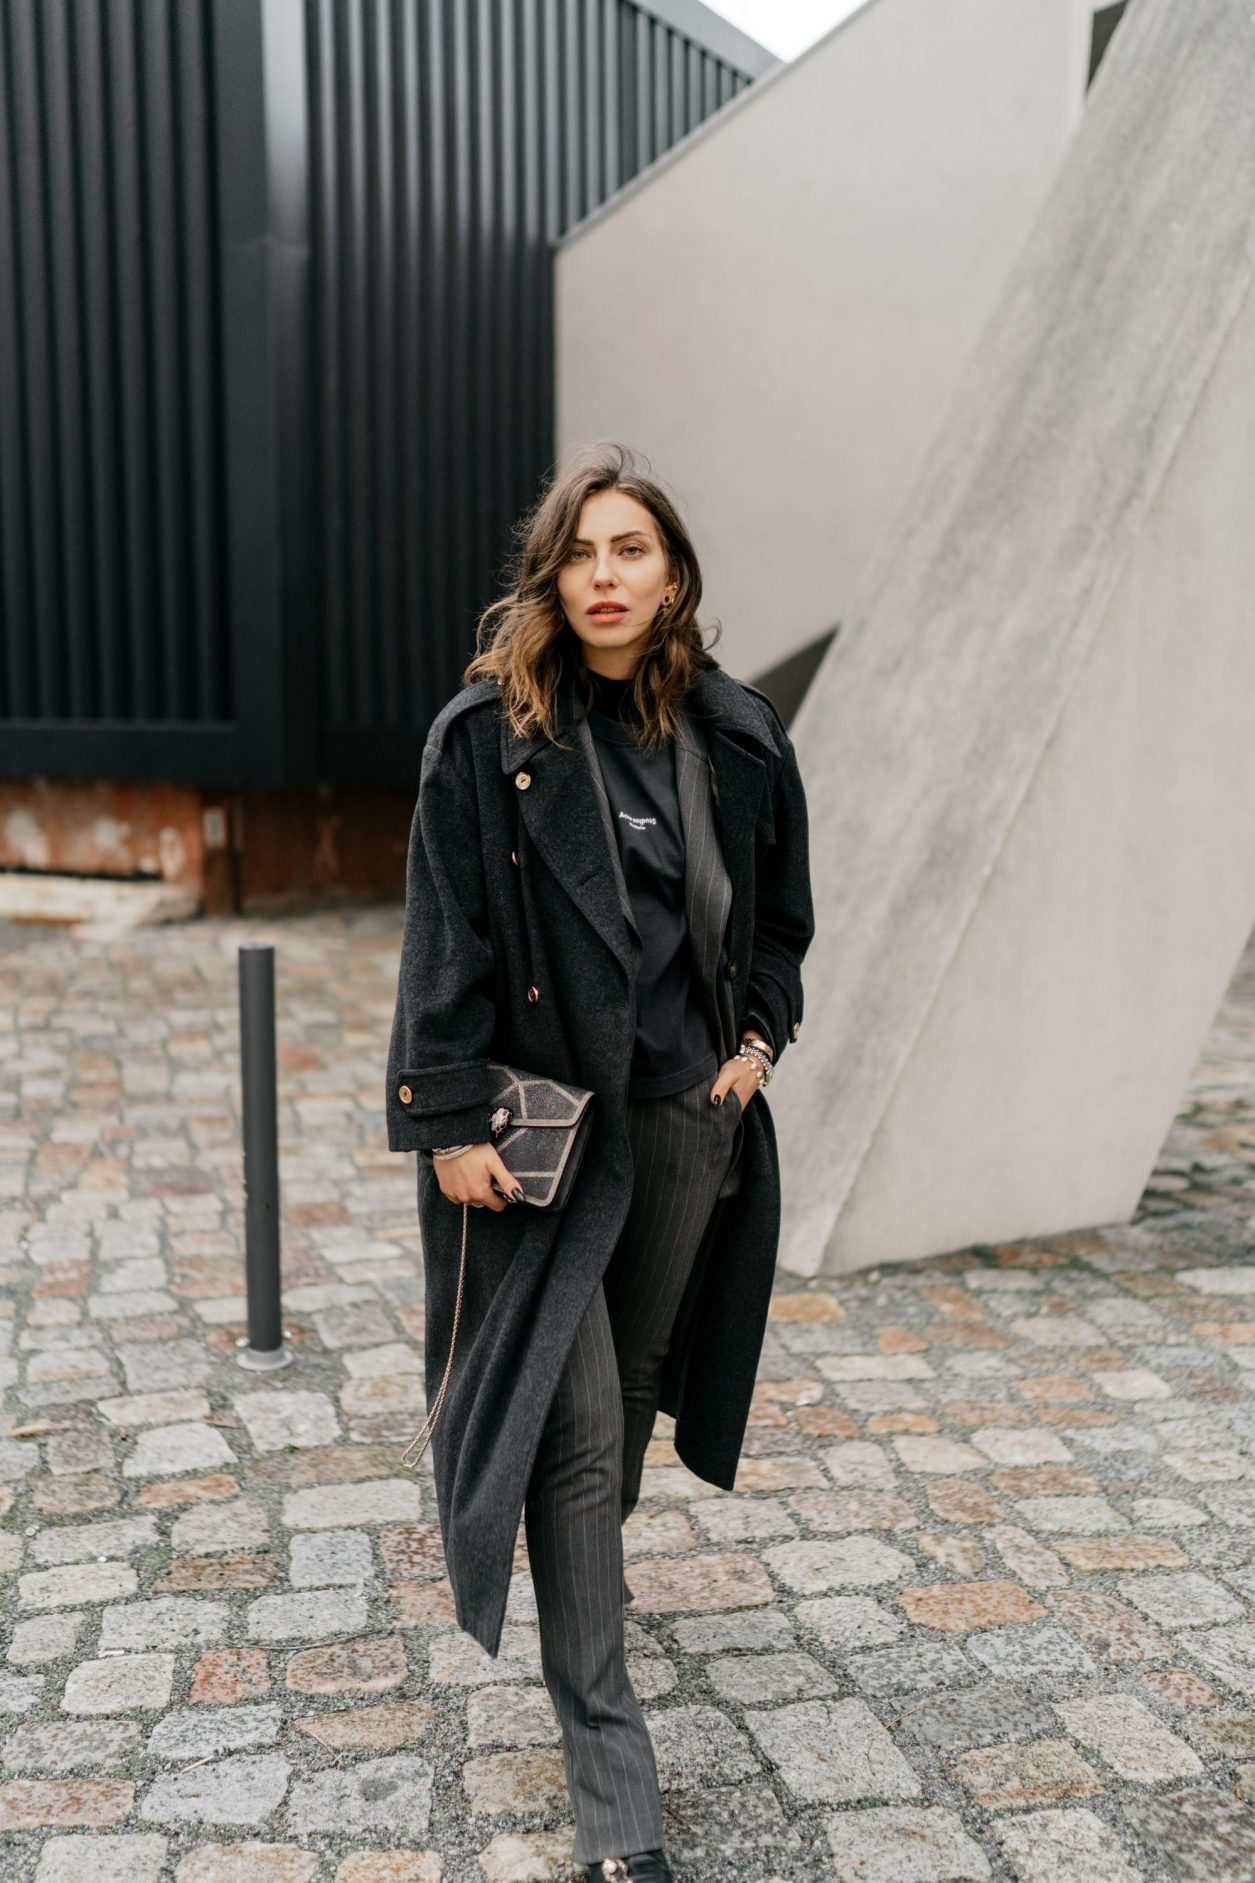 Streetstyle by Masha Sedgwick | Fashion blogger from Berlin | Everyday business outfit ideas, business chic, high end, tomboy style | Wearing grey checked Mango suit, dark grey vintage Celine coat, black leather booties by Flattered, basic logo tee by Acne Studios, glitter mini bag by Bulgari